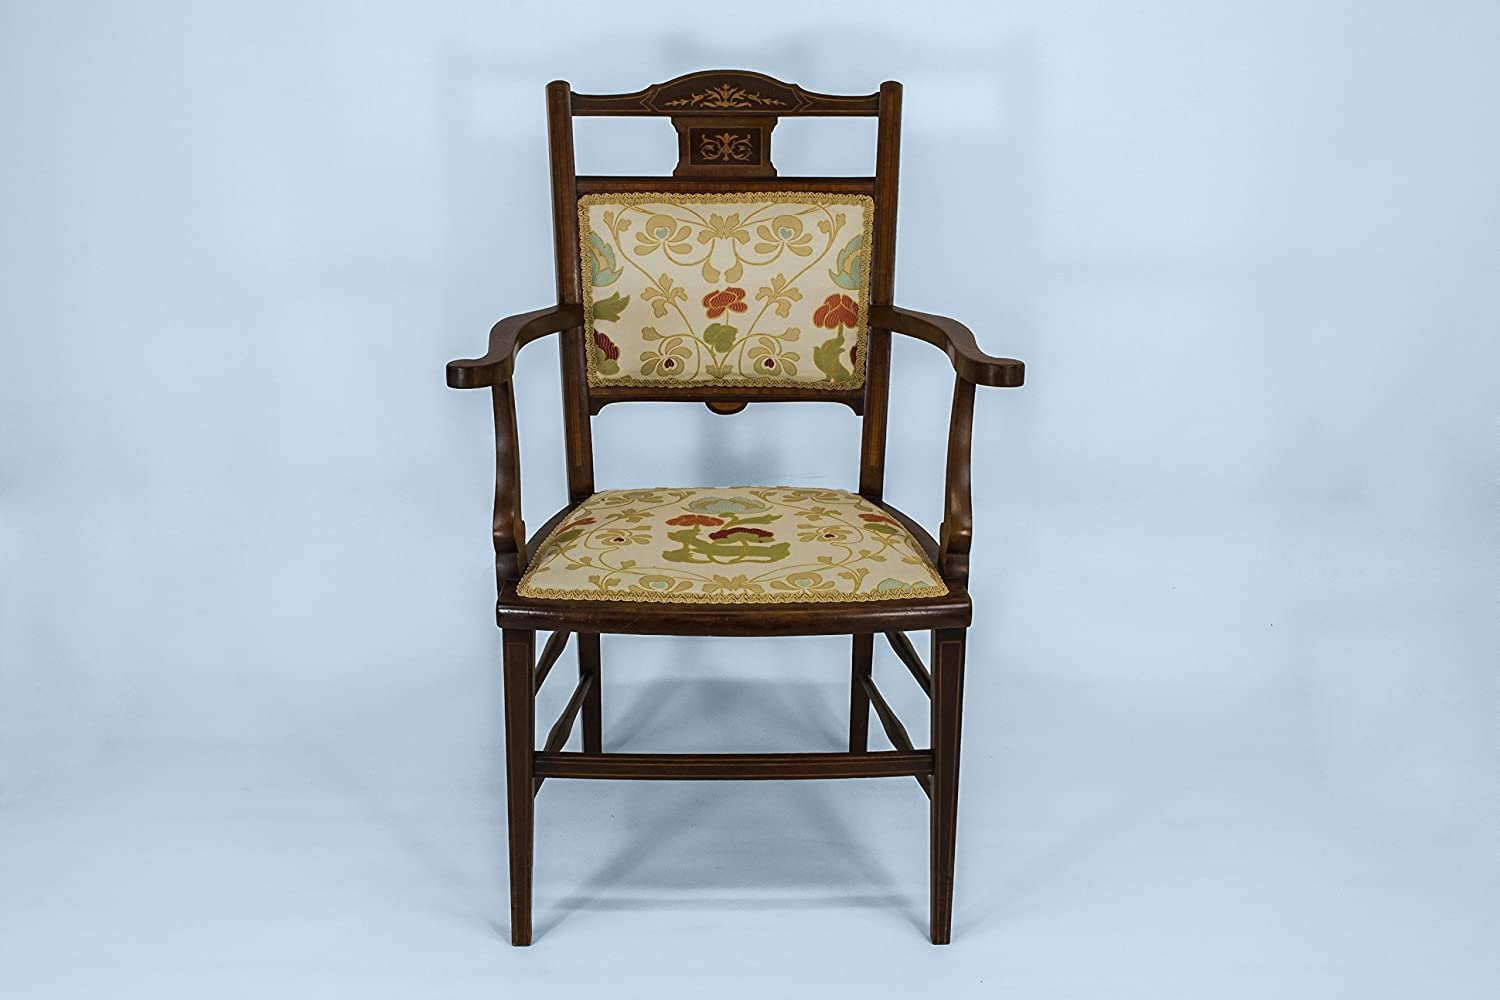 Brown Antique Medium ARMCHAIR Floral Design neoklassischen Palisander Opulent Creme Soft-Englisch circa 1900 LS